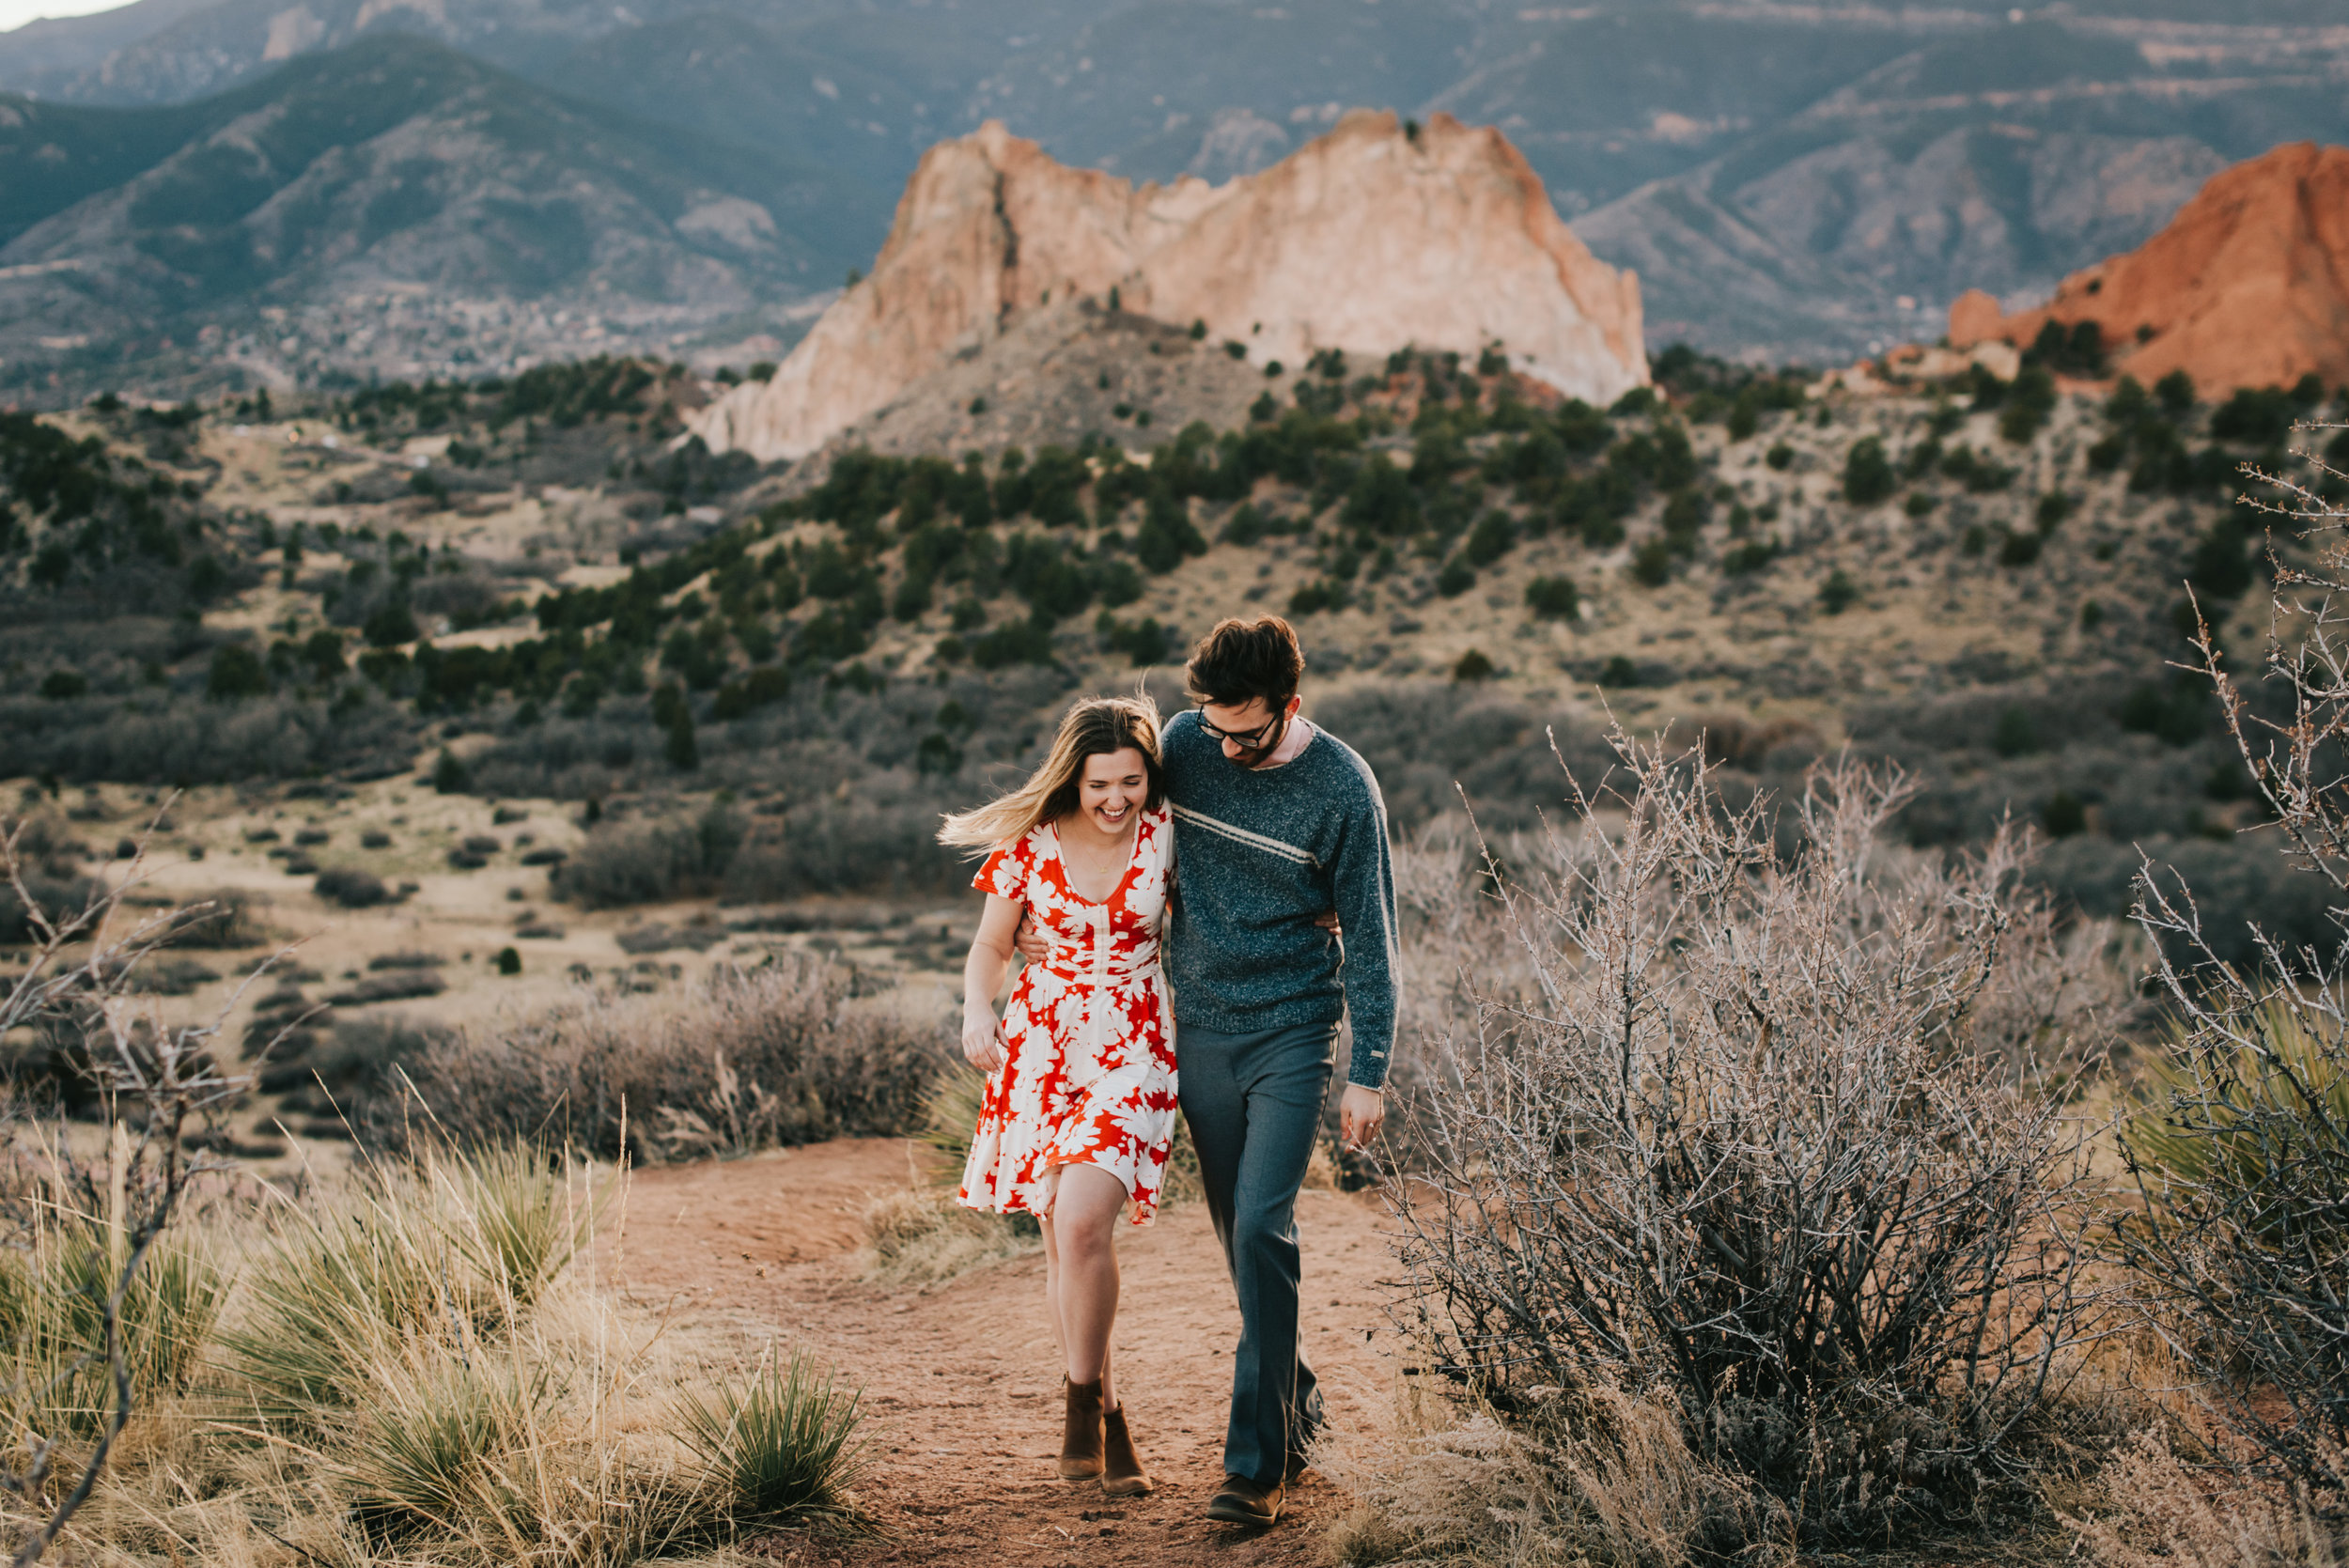 Rachel and Ted walking through Garden of the Gods in Colorado during their Colorado Springs engagement session